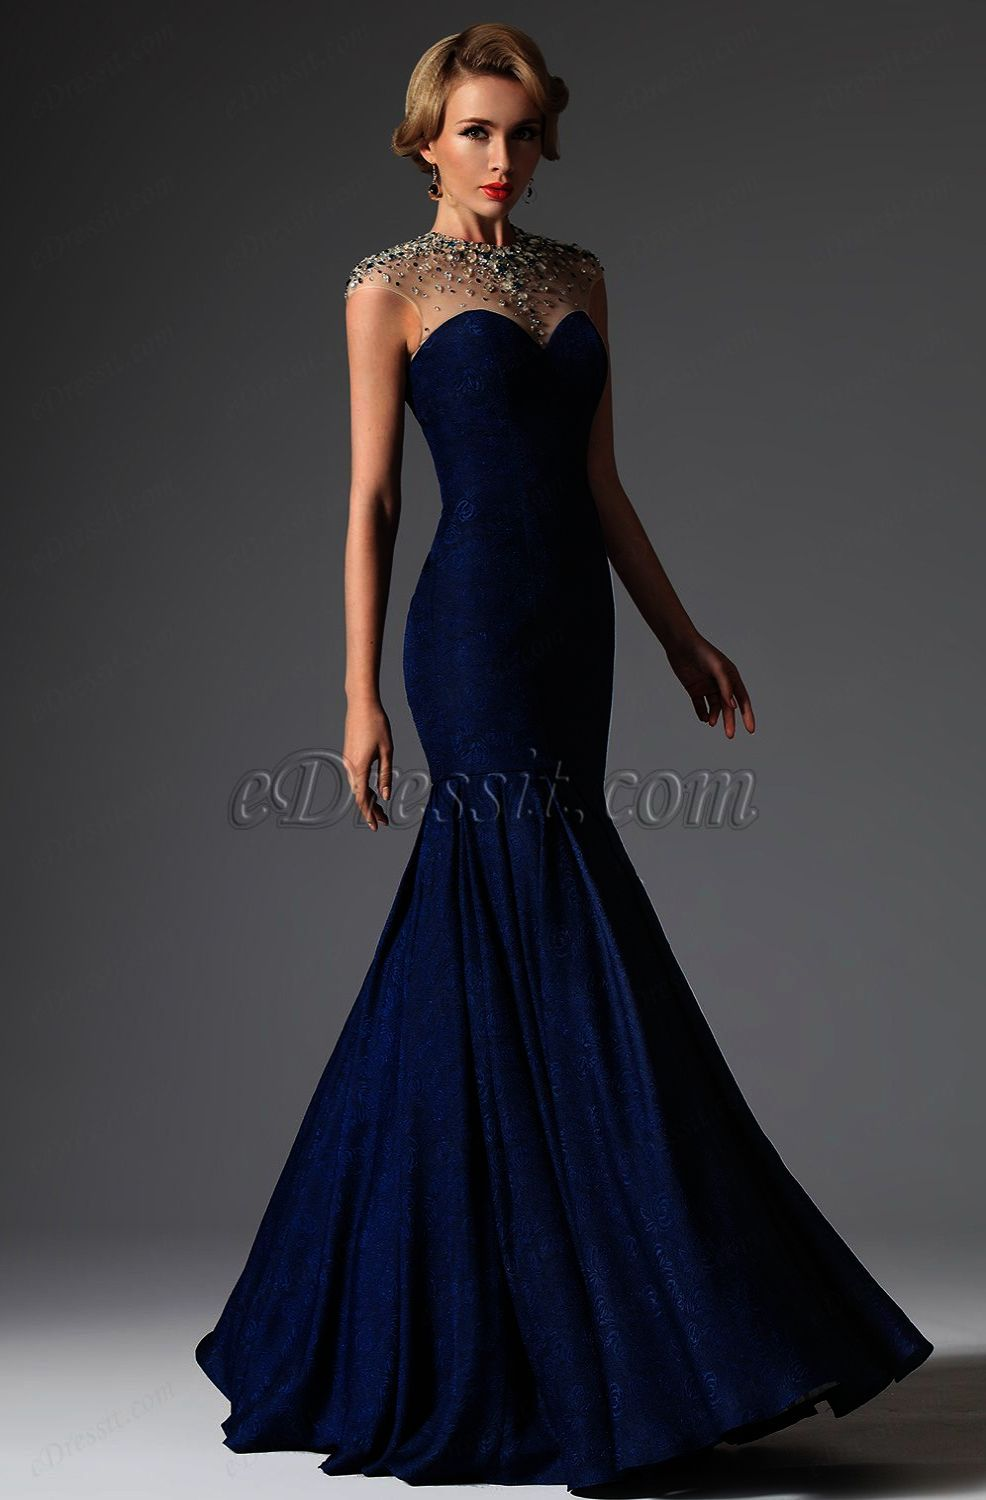 b759e27ee55 Look what I found - Womens Formal Dress Stores Near Me  nice ...